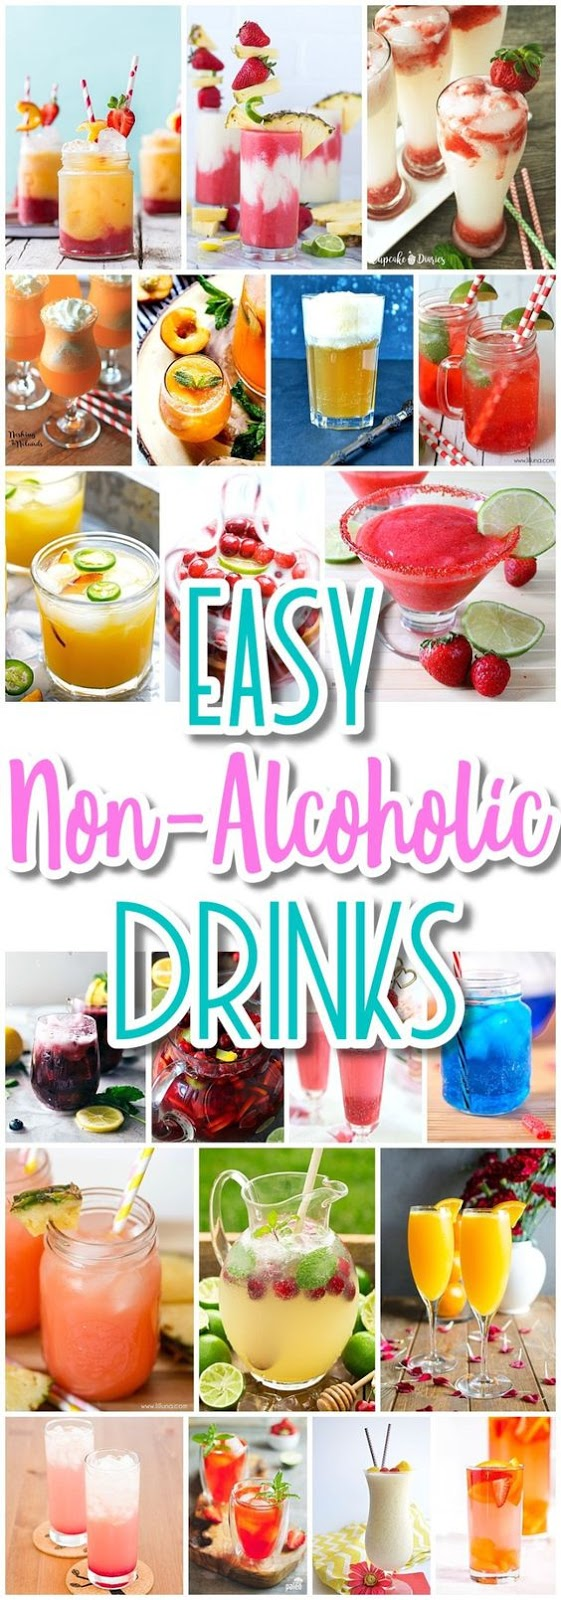 The BEST Easy Non-Alcoholic Drinks Recipes – Creative Mocktails and Family Friendly